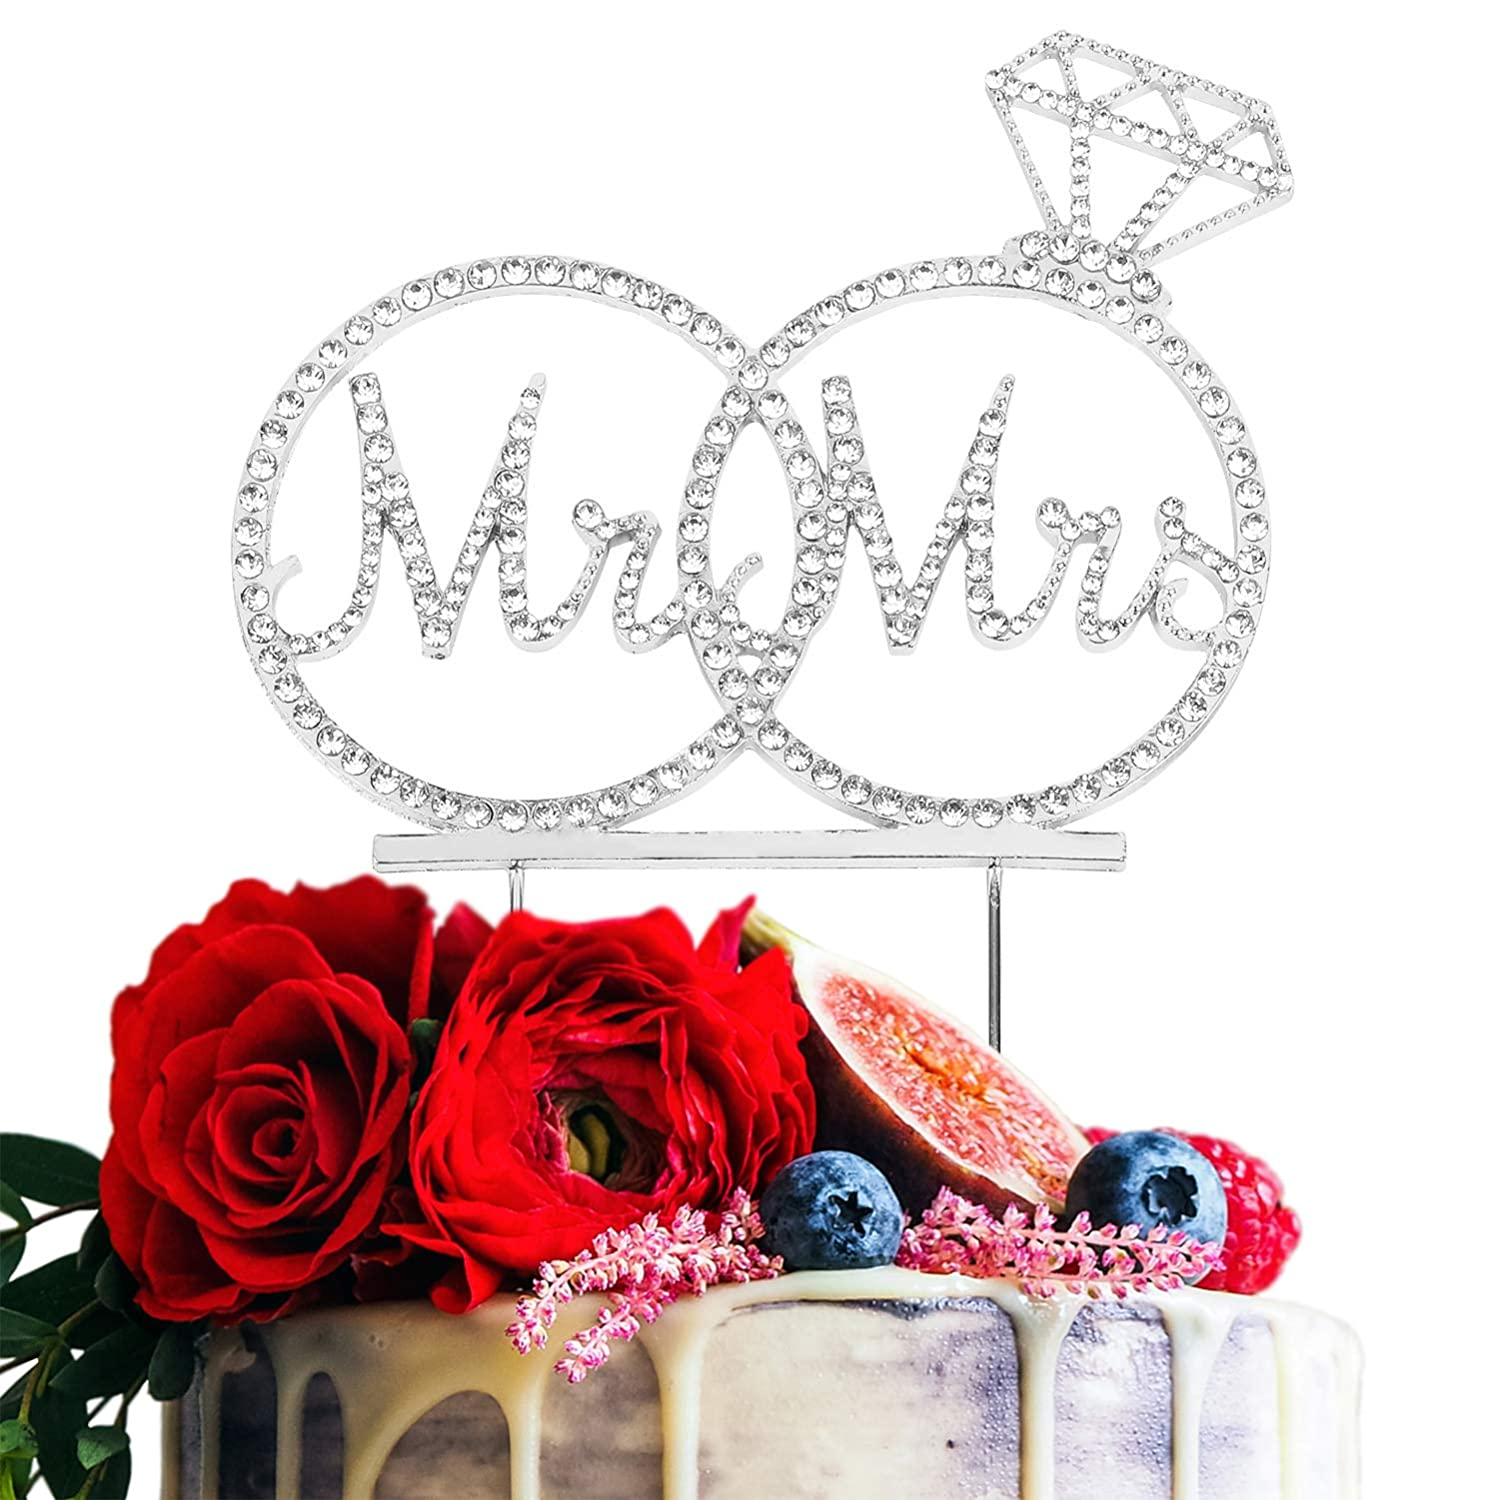 Mr /& Mrs Cake Topper For Wedding Anniversary Rings Crystal Rhinestone Party Decoration Gold